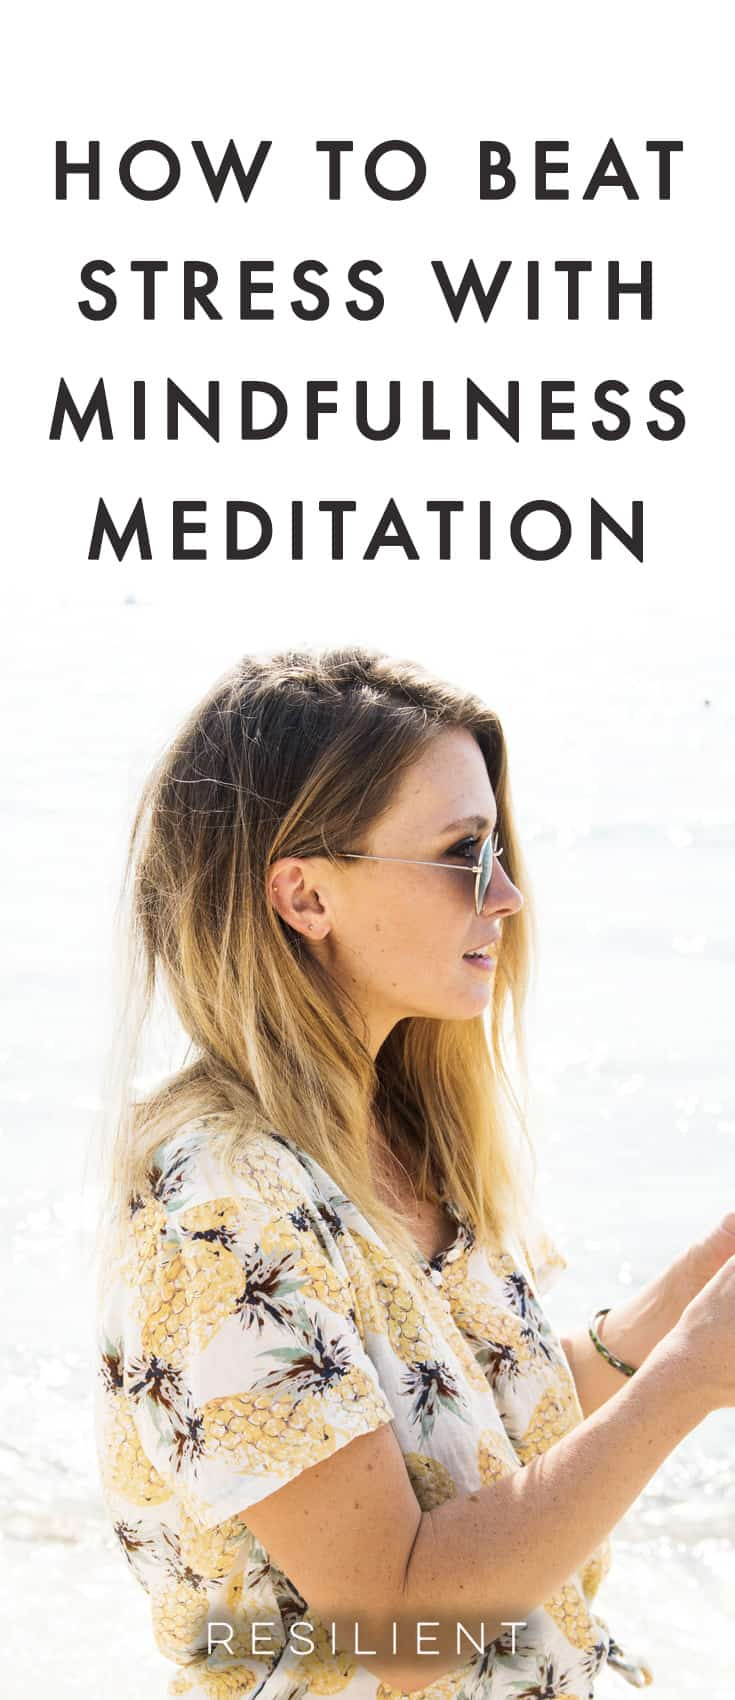 """The saying """"mind over matter"""" may have been proven right again. Researchers at Georgetown University Medical Center recently spearheaded a study utilizing 89 patients to discover whether stress can be reduced by mental power alone. Here's how to beat stress with mindfulness meditation."""